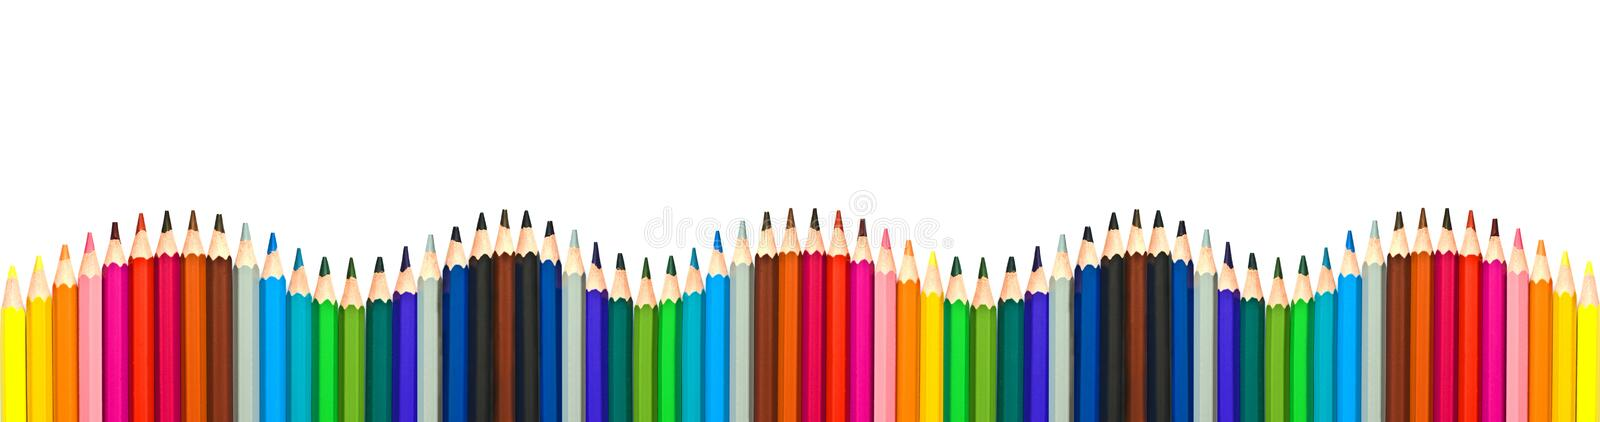 Wave of colorful wooden pencils isolated on white, panoramic background, back to school concept royalty free stock photos